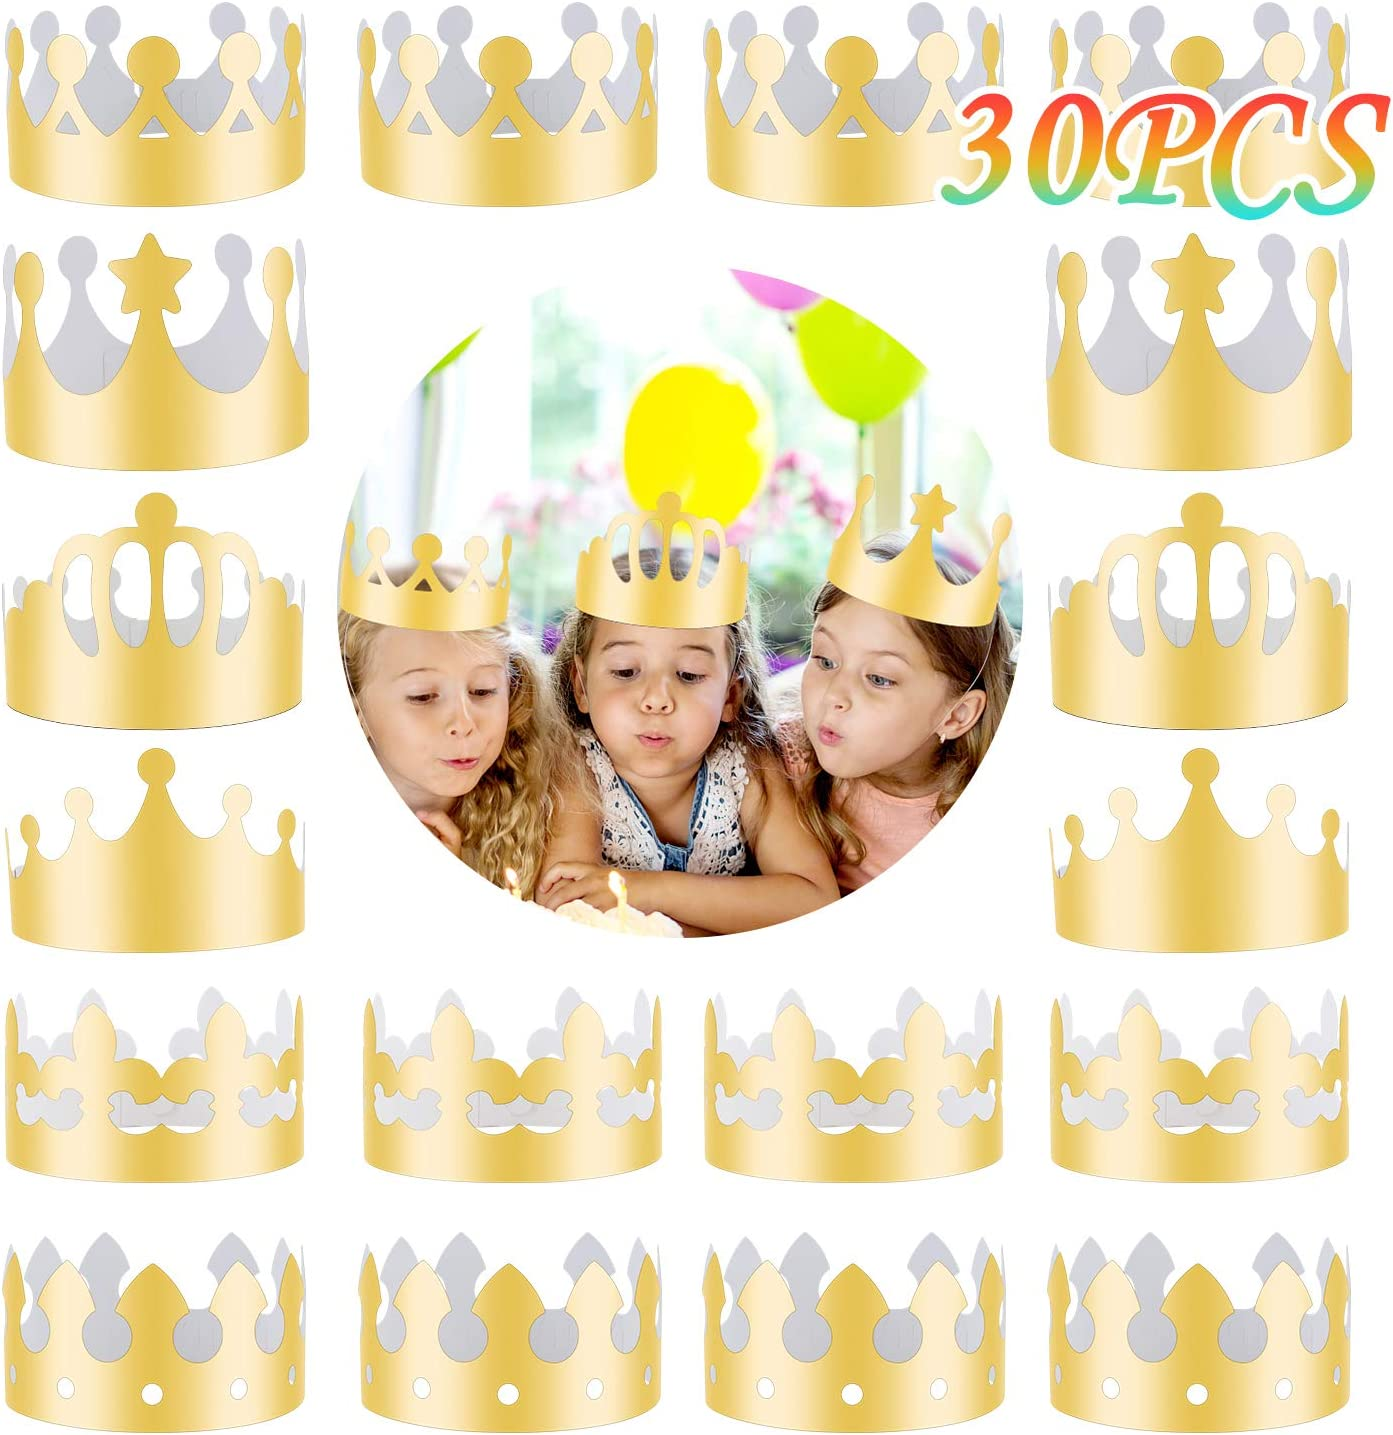 30 Pieces Golden King Crowns 6 OFFicial store Foil Gold Style National products Paper MSDADA